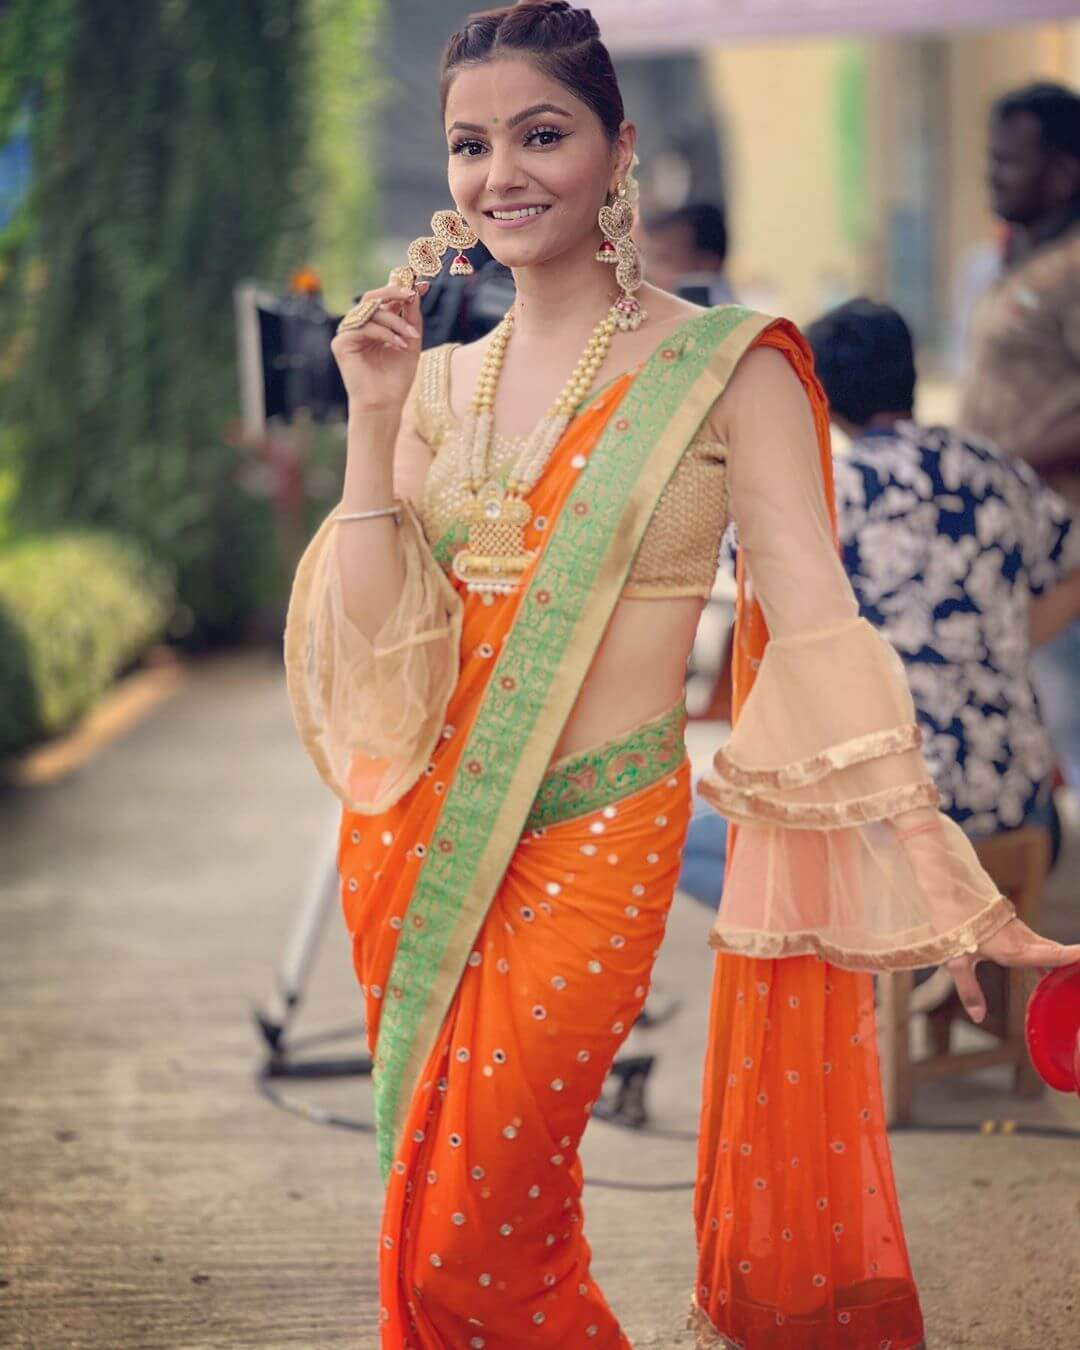 Full Length Bell Sleeves With Multiple Frill Design Saree Blouse Design by Rubina Dilaik